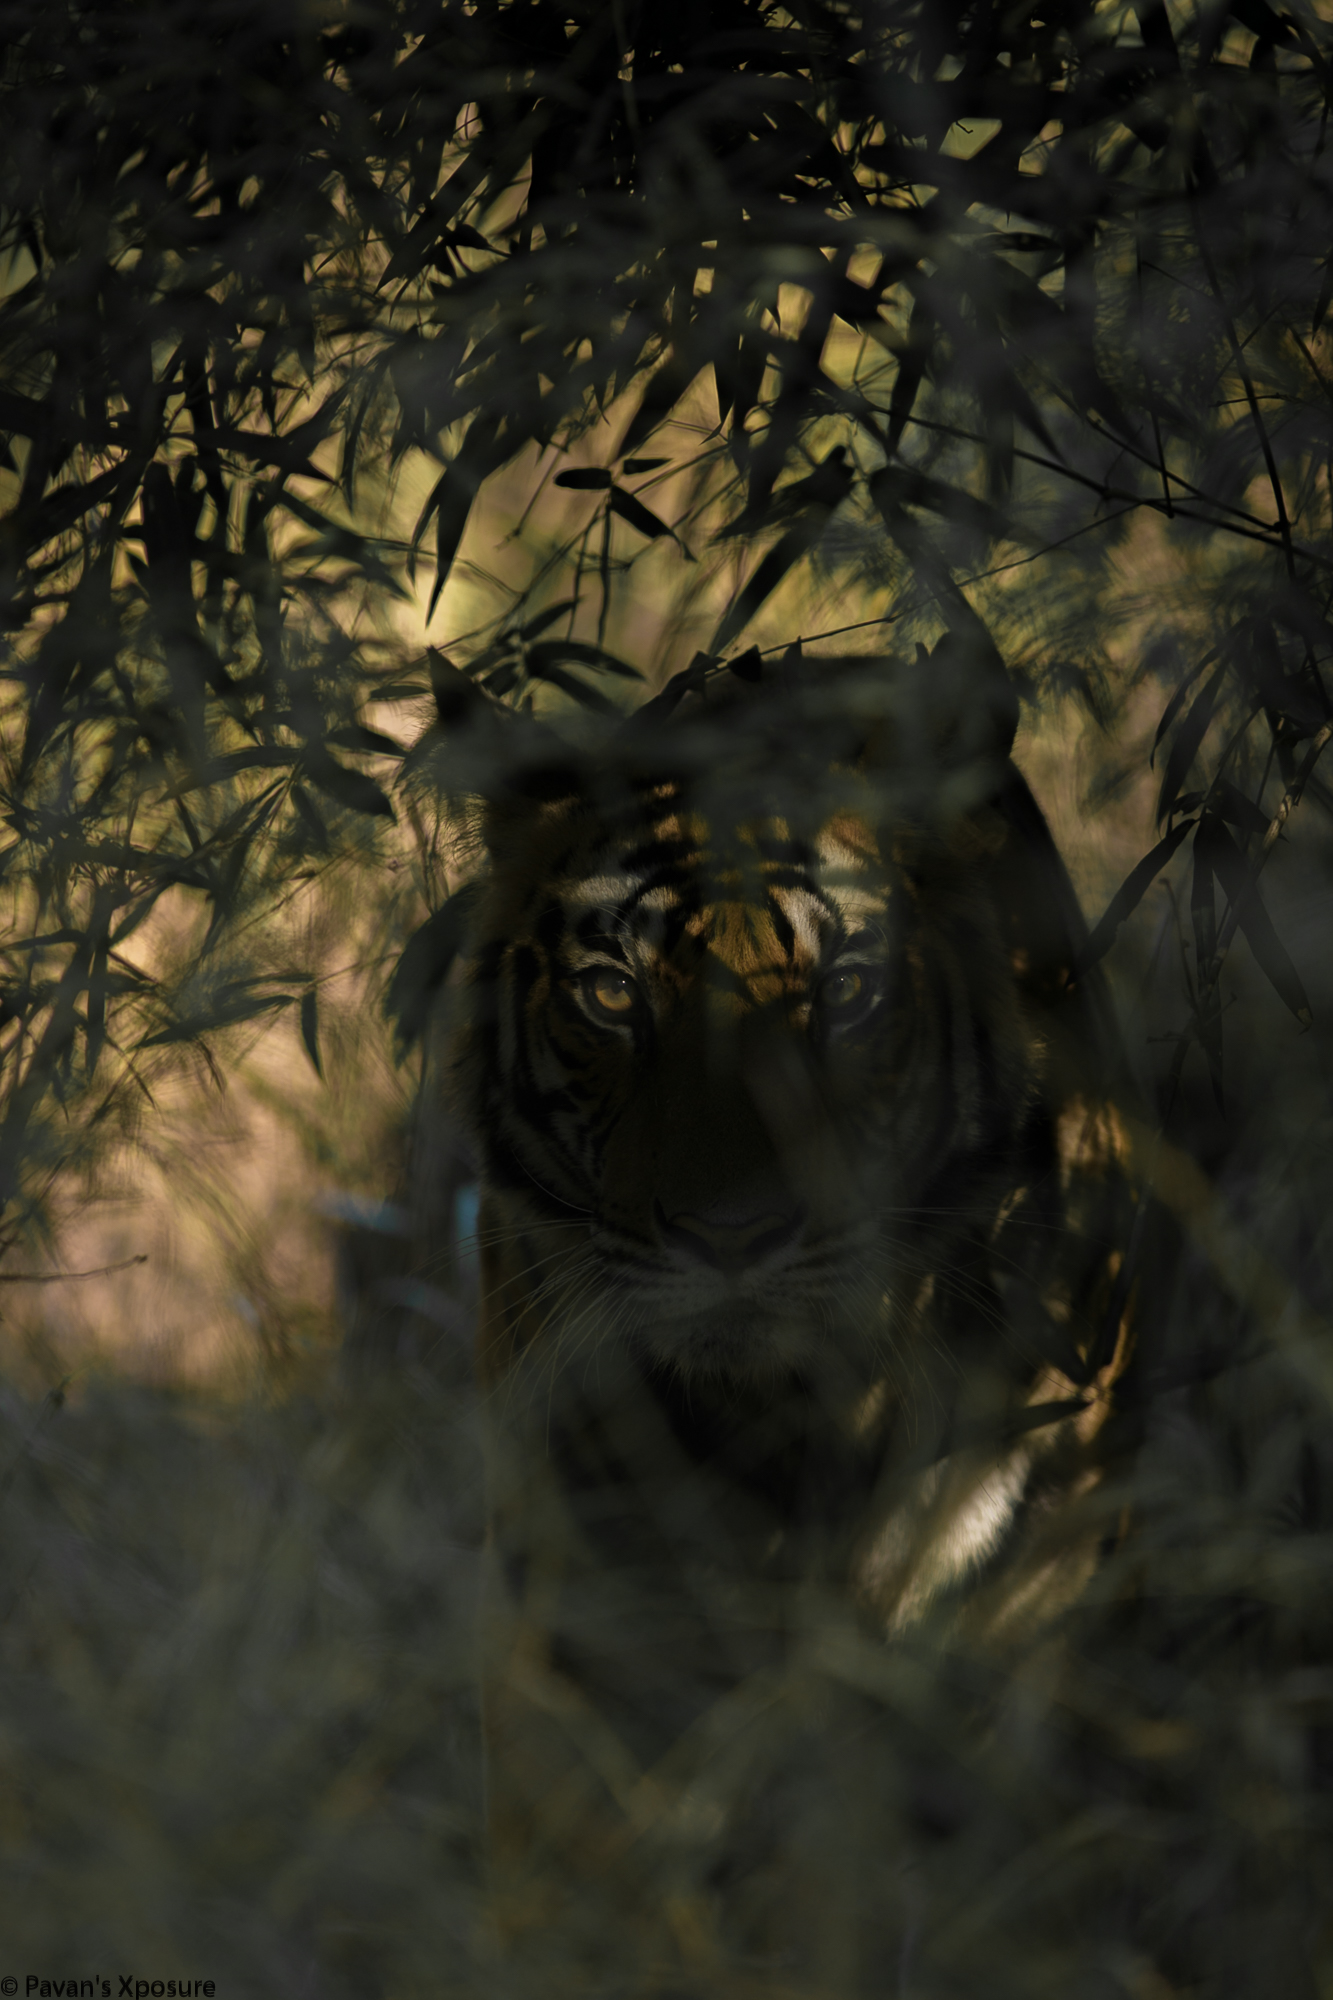 When into the woods one should be very attentive to surroundings. This picture depicts one such moment where the winds have whispered us about the presence of a deadly predator and at a deep surveillance we were lucky to find pinching eyes of this devil.